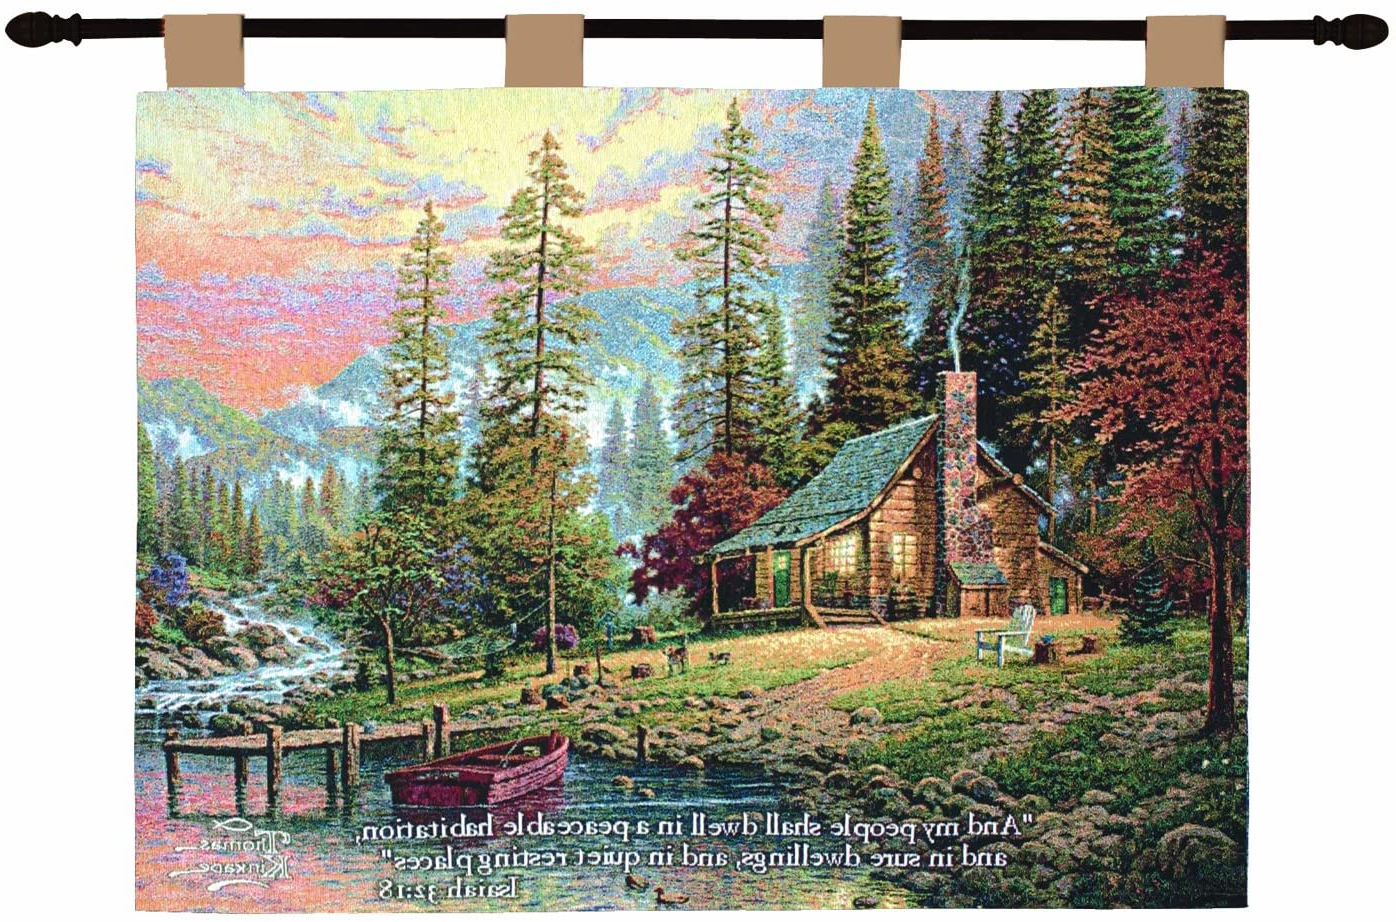 Blended Fabric Autumn Tranquility Verse Wall Hangings With Regard To Widely Used Manual Inspirational Collection 26 X 36 Inch Wall Hanging And Finial Rod, A Peaceful Retreat With Versethomas Kinkade (View 7 of 20)